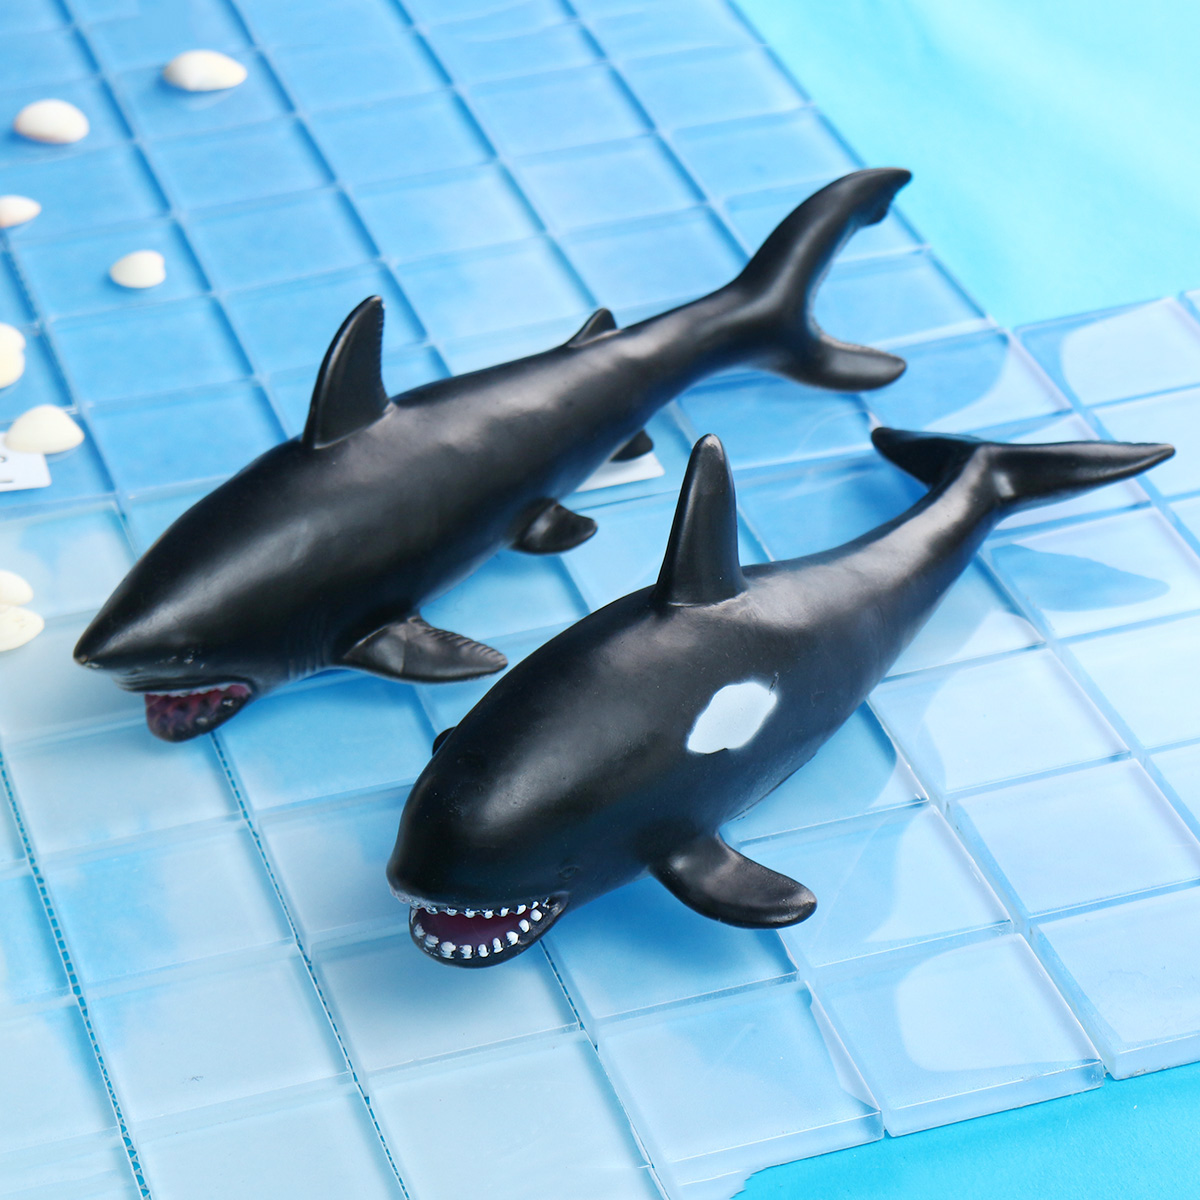 30cm White Shark Killer Whale Soft Model Toys Glue Material